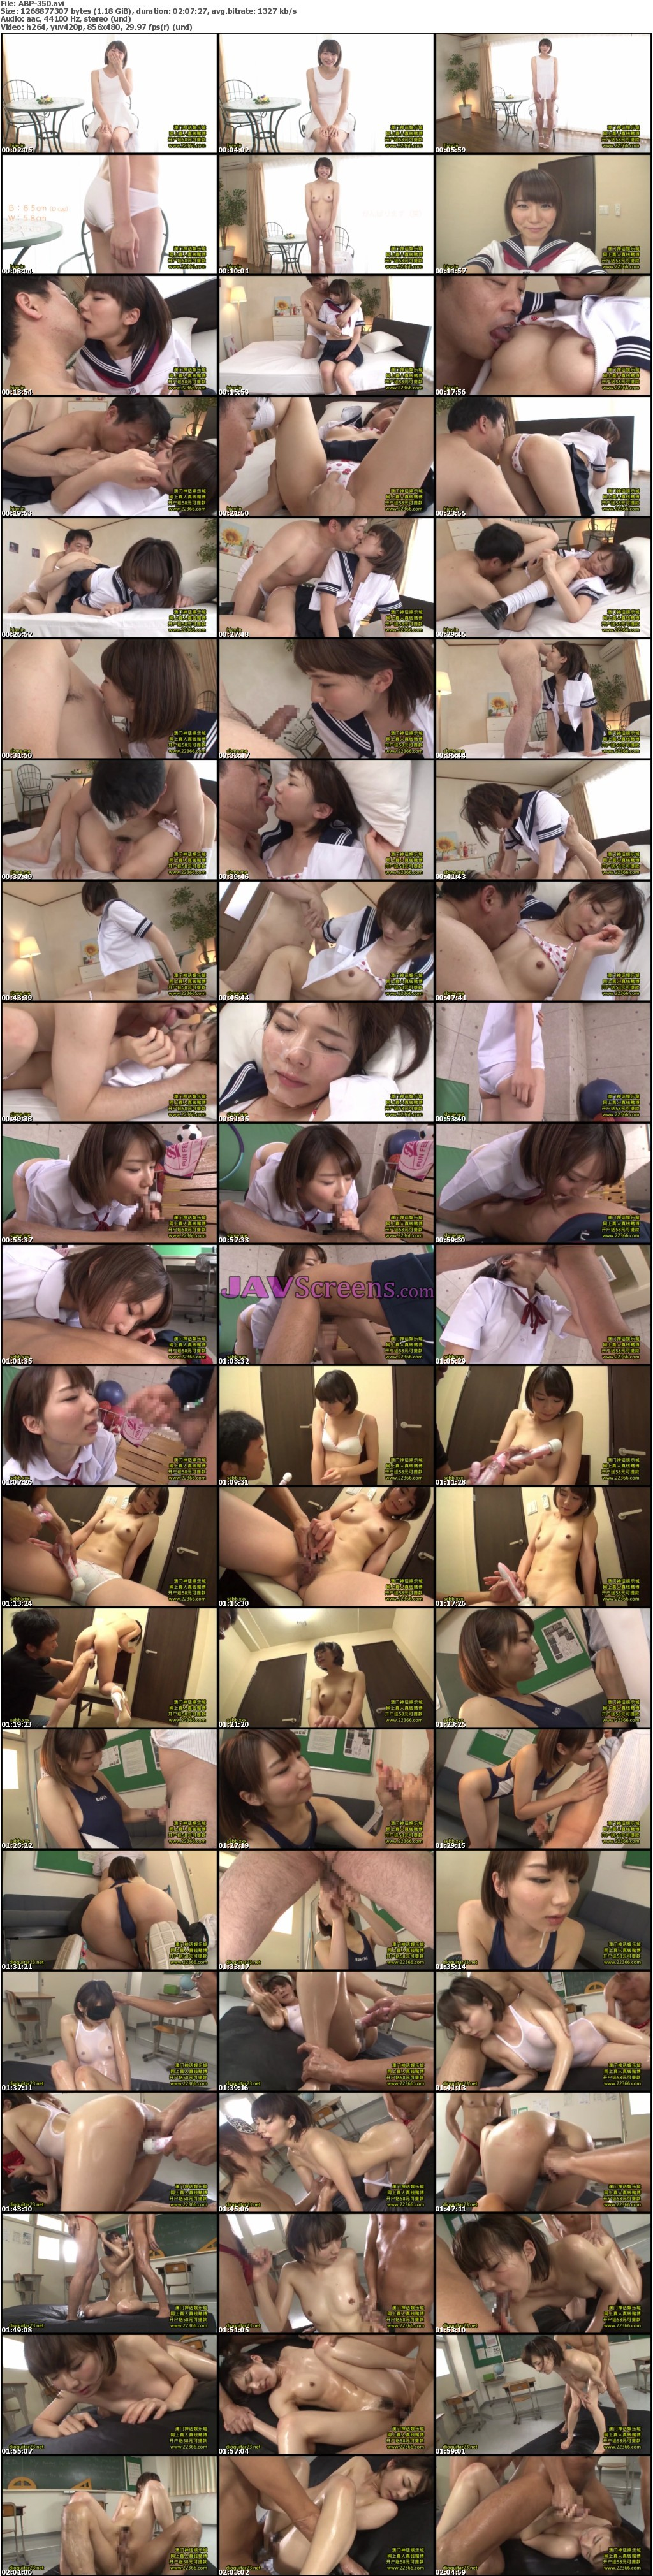 ABP-350.jpg - JAV Screenshot